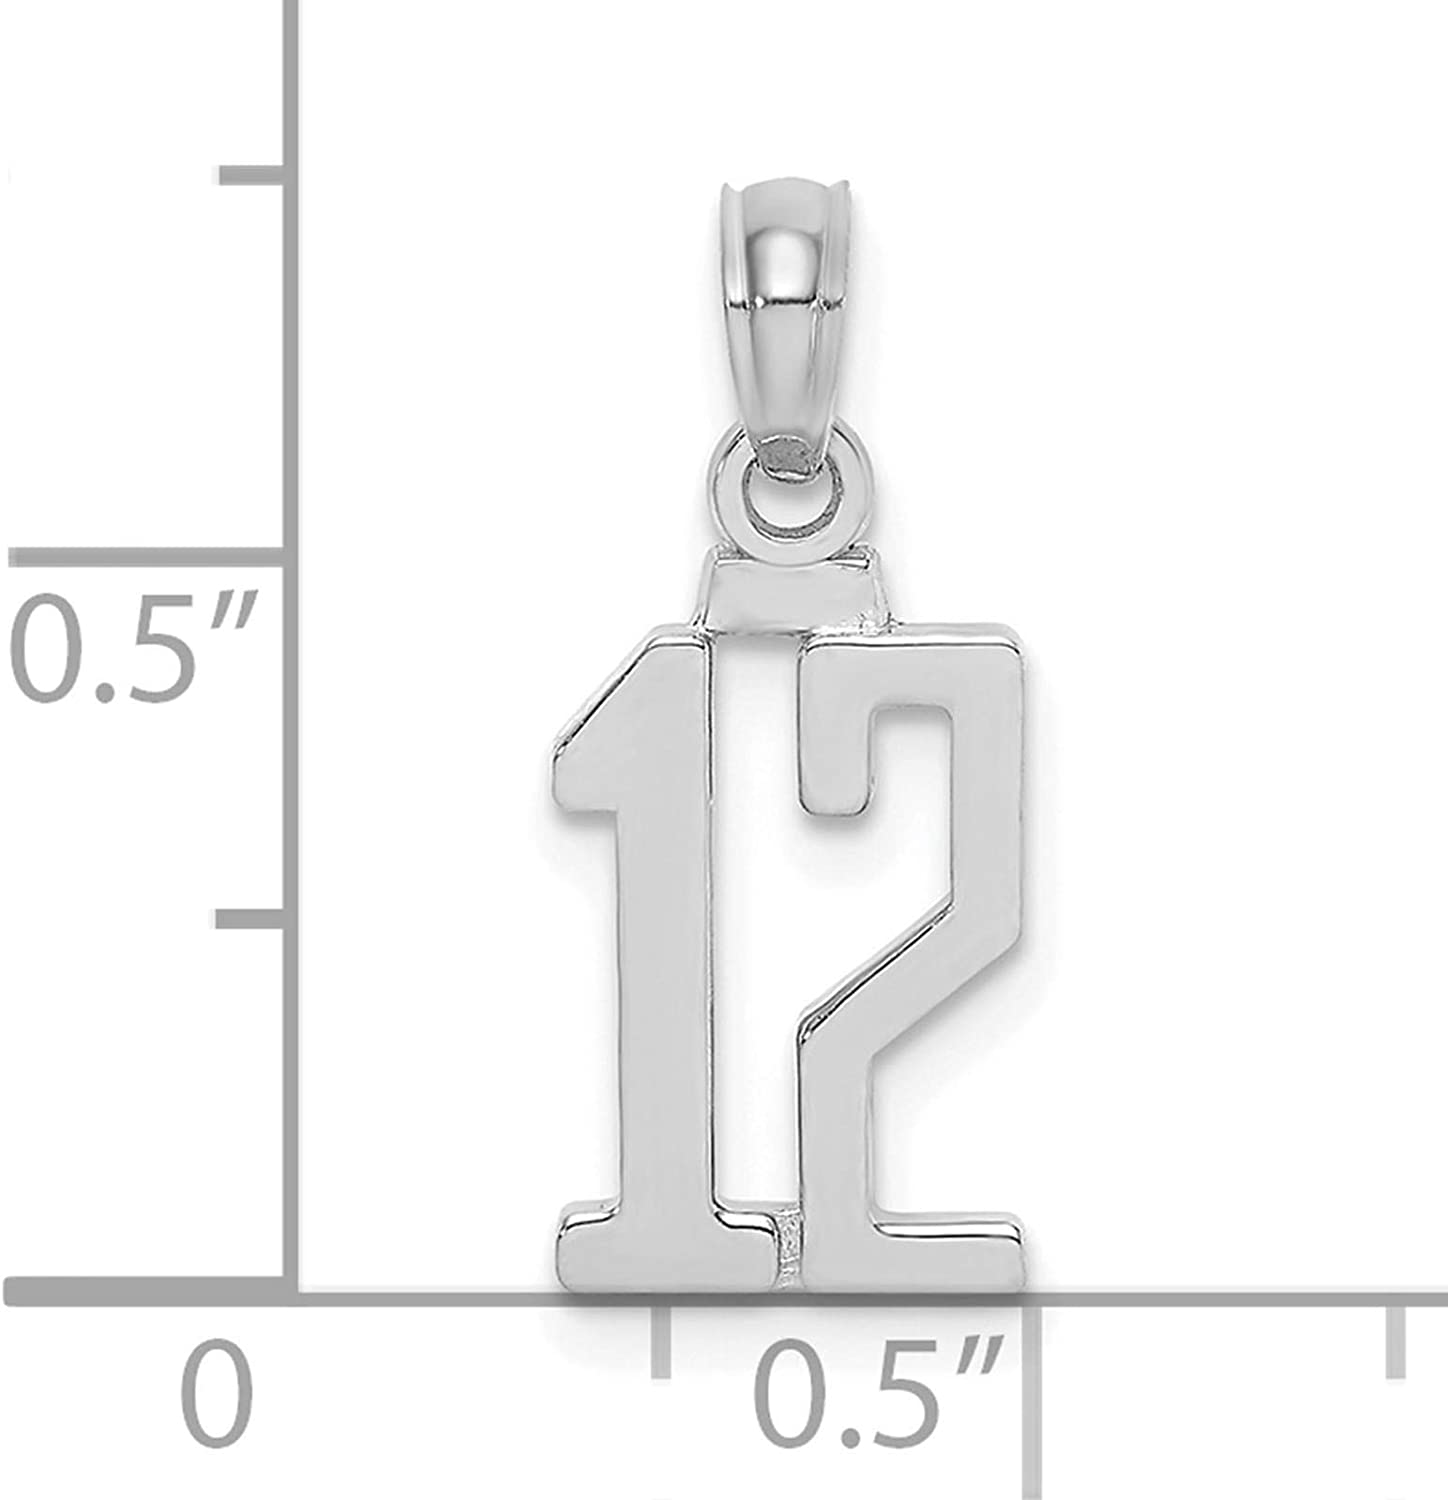 14K White Gold Polished Block Style Number 12 Charm Pendant